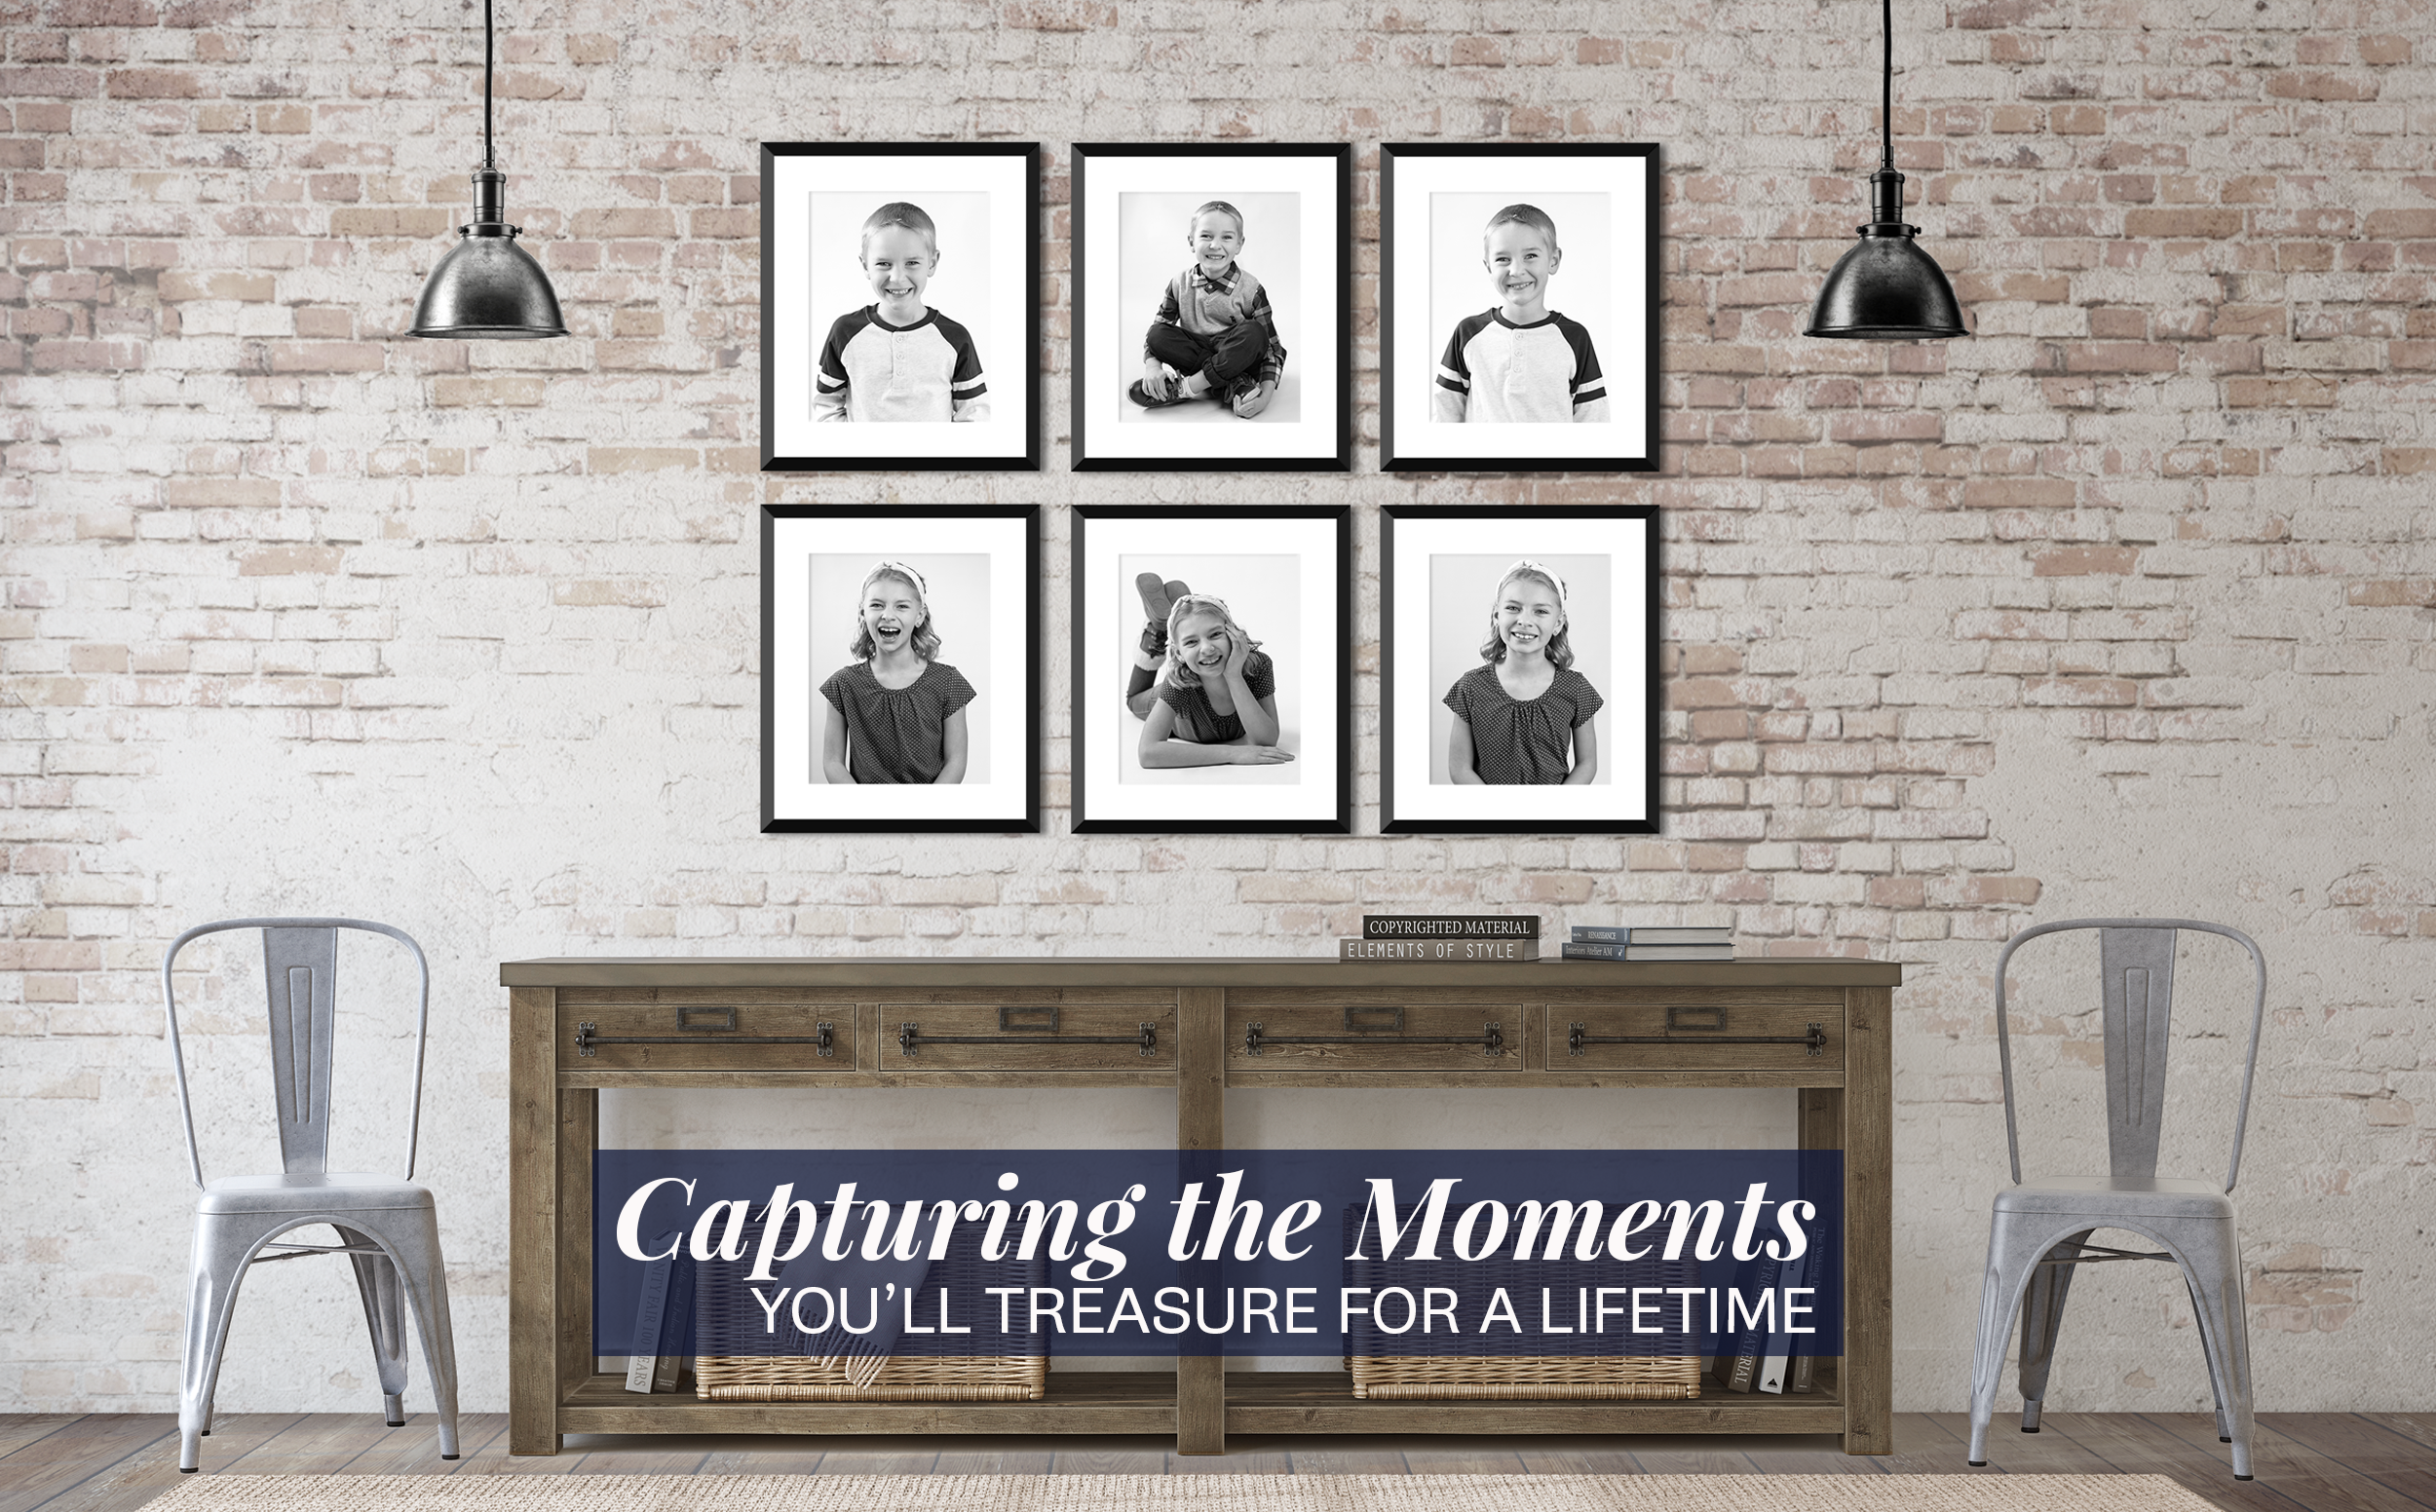 A brick entryway with a wooden table flanked by two metal chairs gallery wall of black and white images of young kids making fun faces.